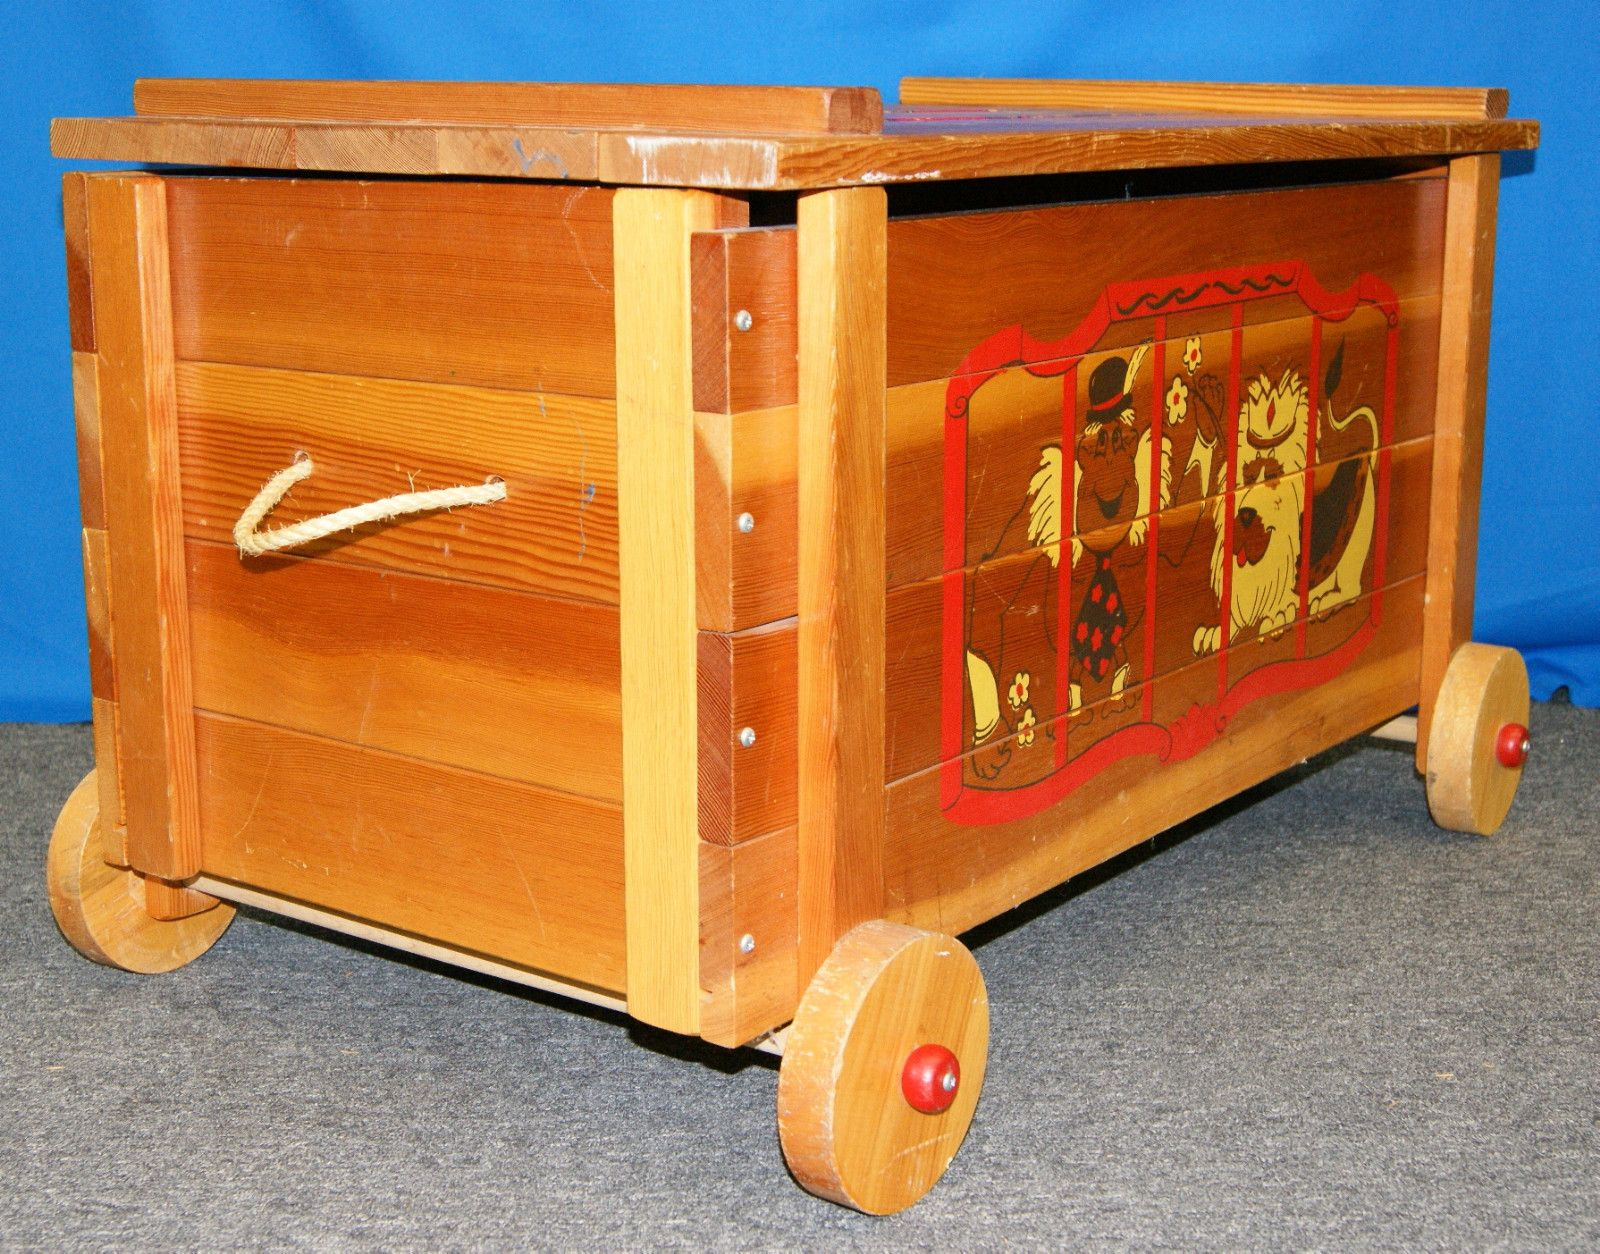 Vintage 1960s Wooden Circus Wagon Toy Chest Toy Chest Wood Toy Chest Wood Toys